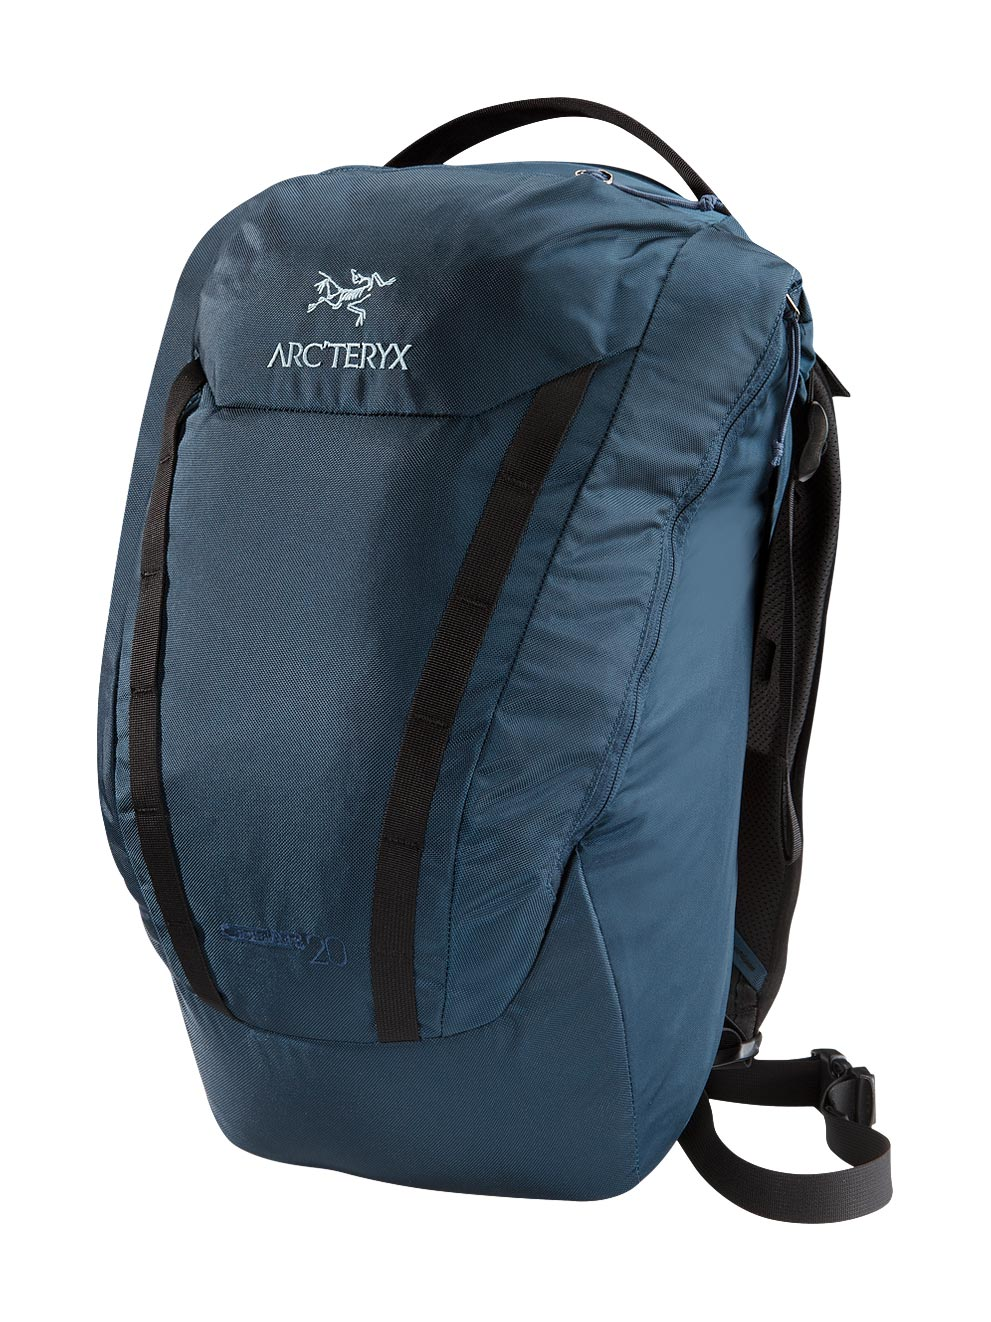 Arcteryx Blue Moon Spear 21